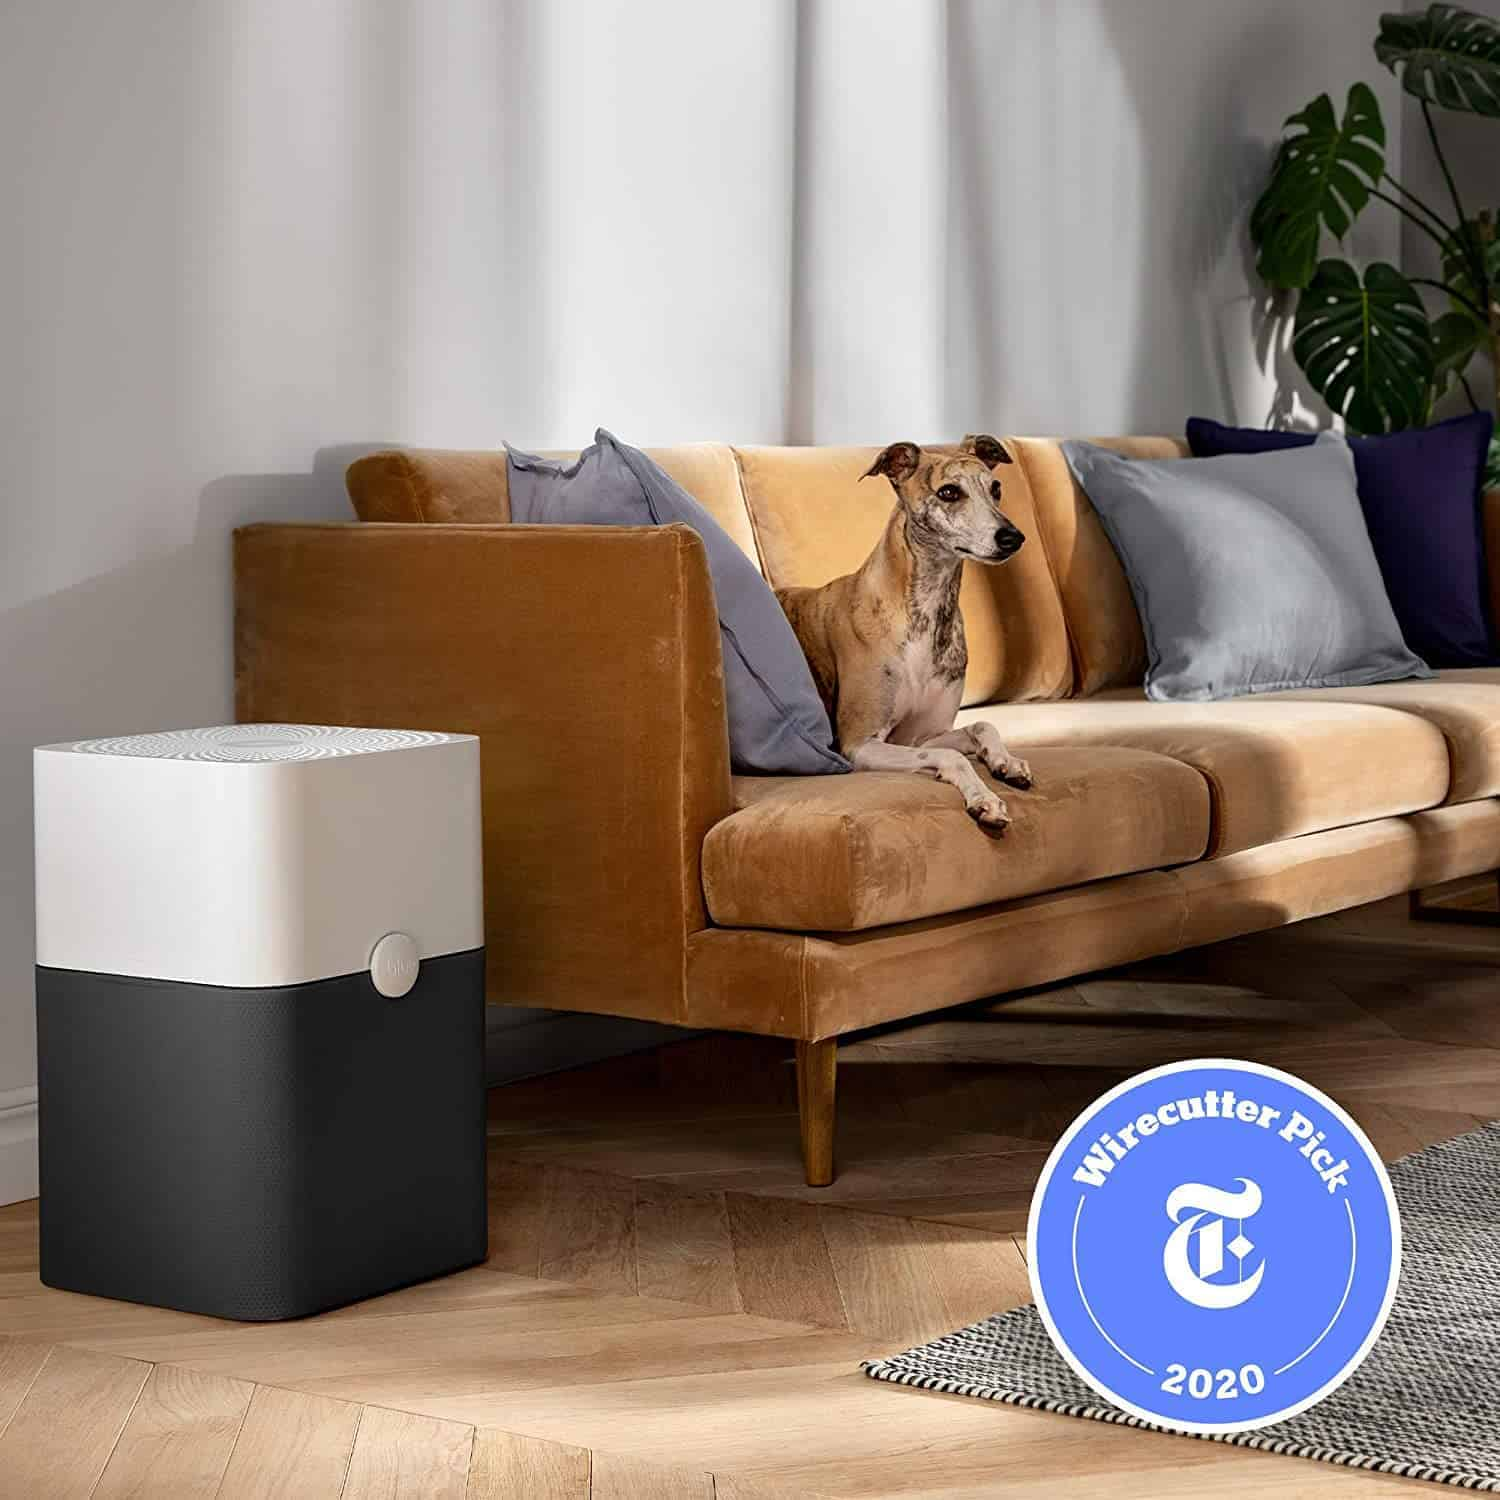 Best air purifier for allergies: Blue Pure 211+